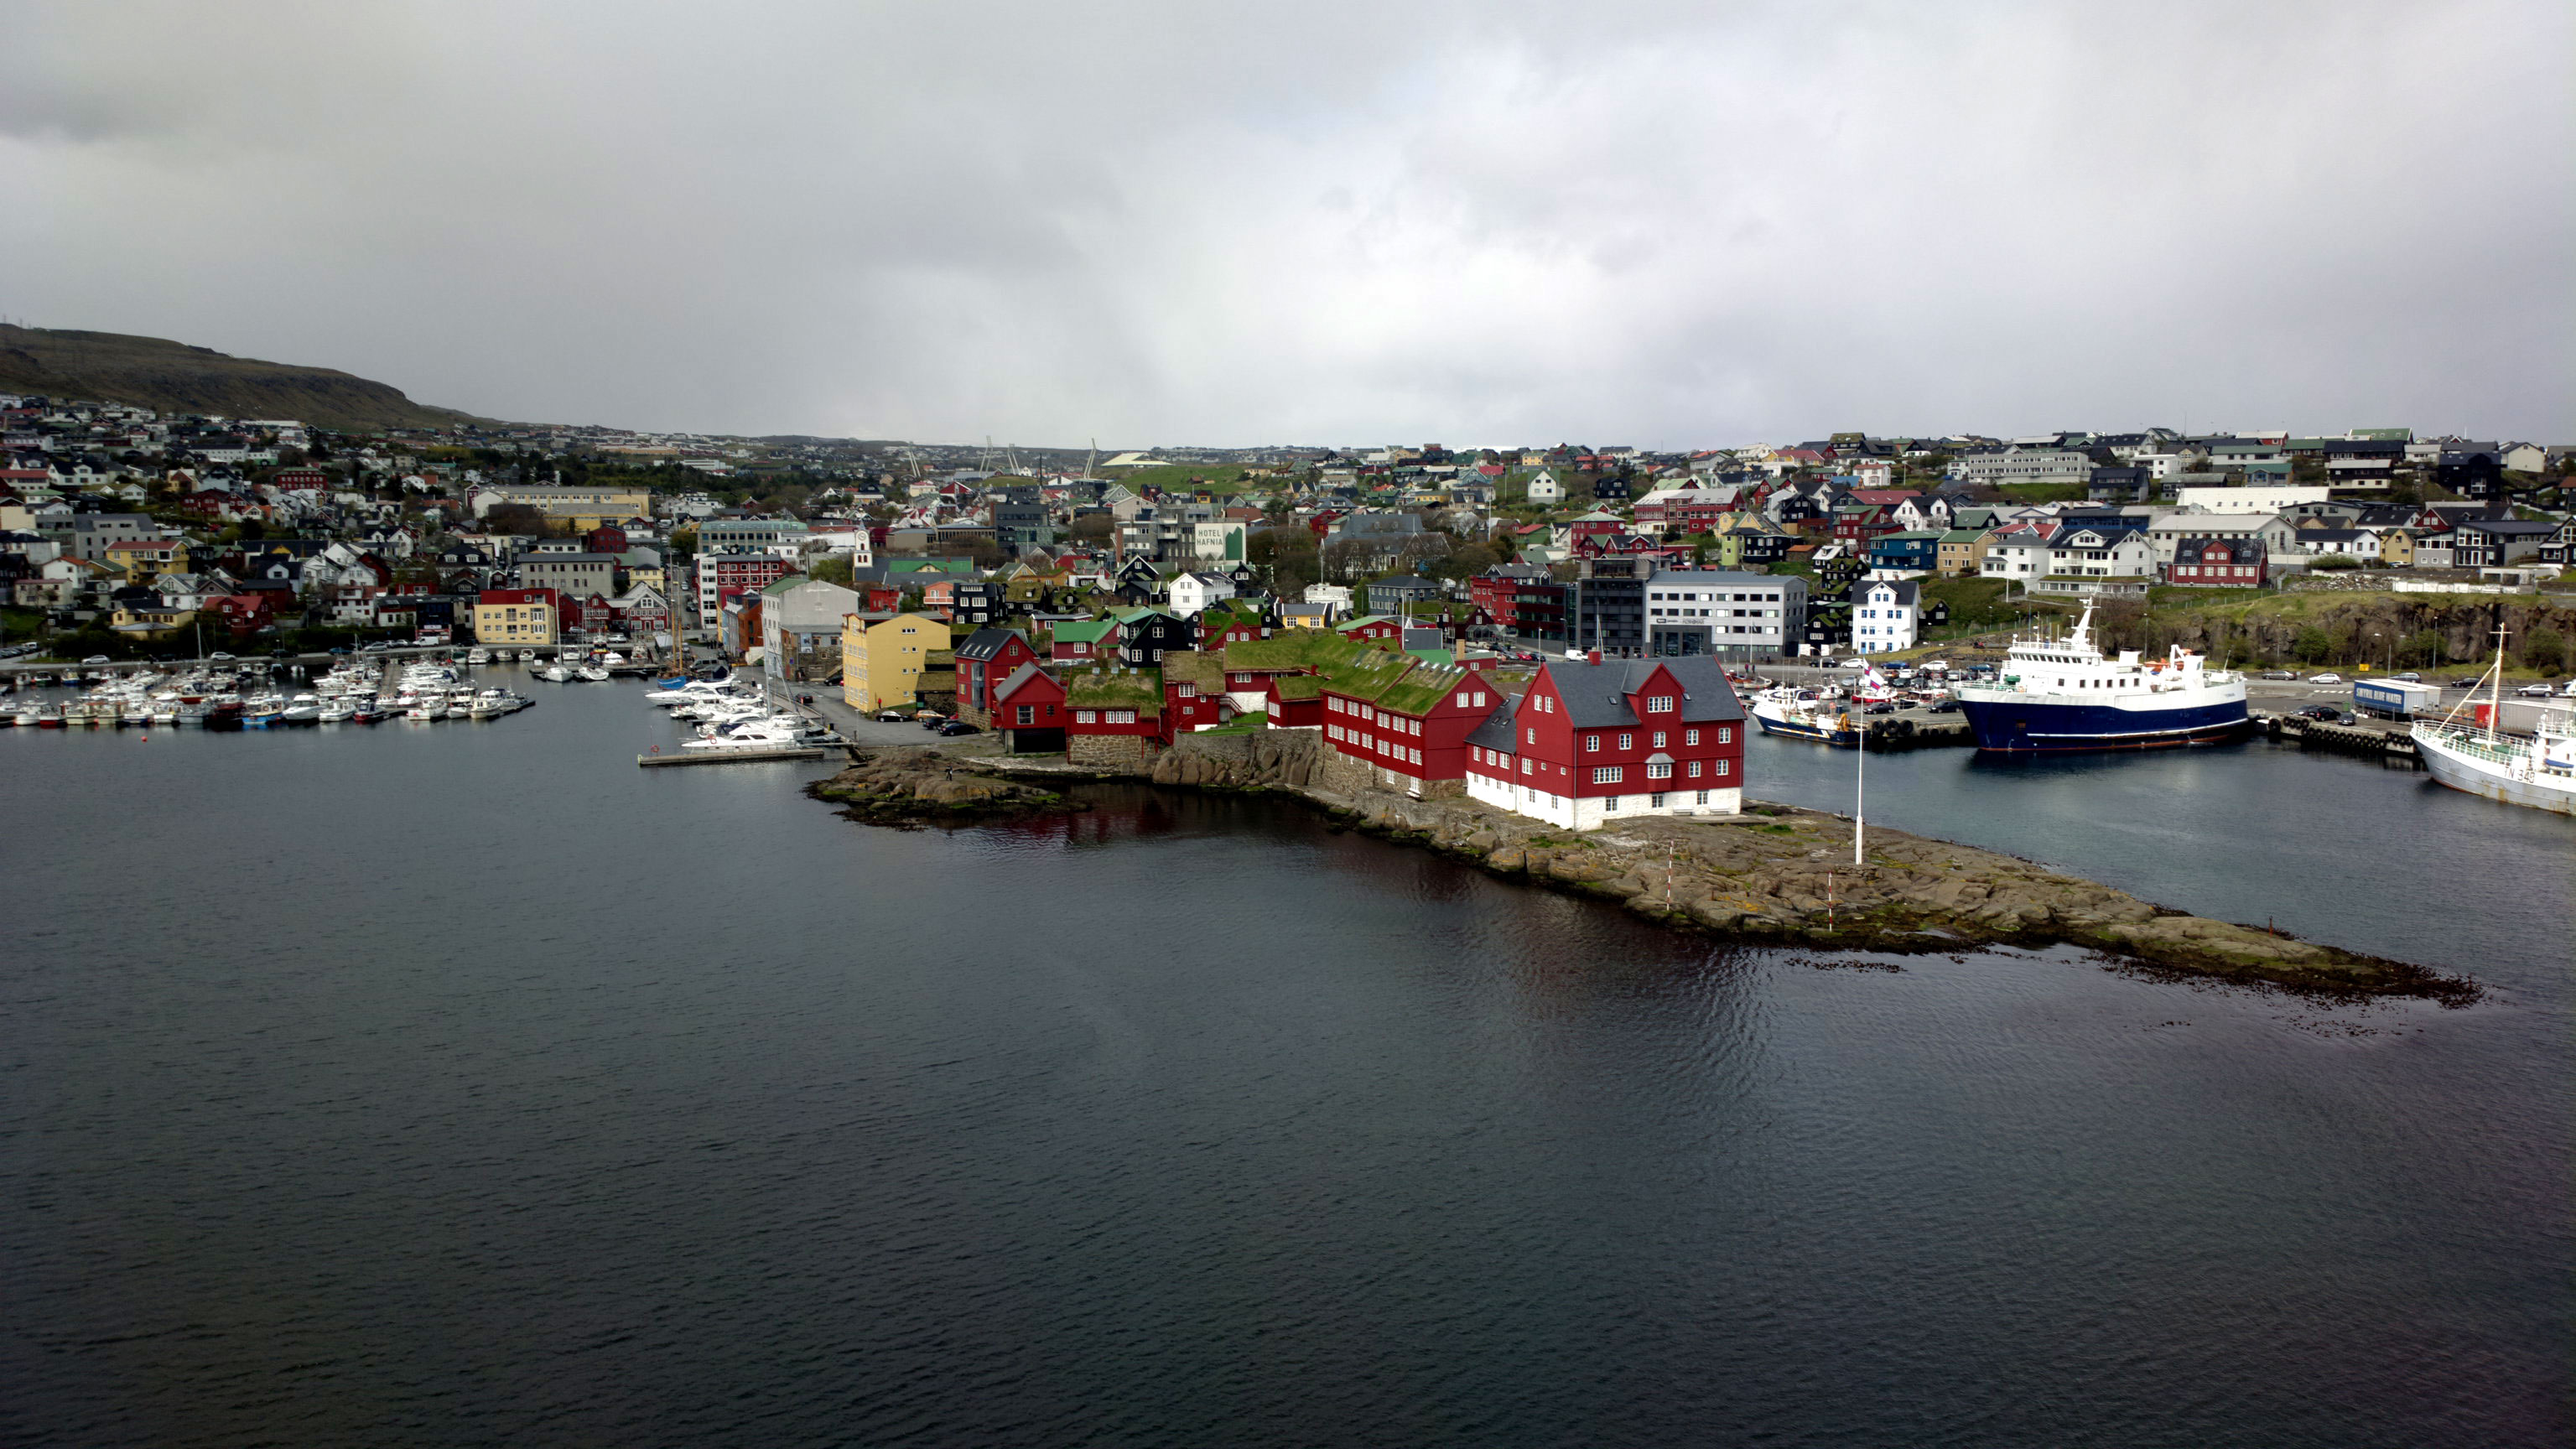 Tórshavn is the capital and largest town